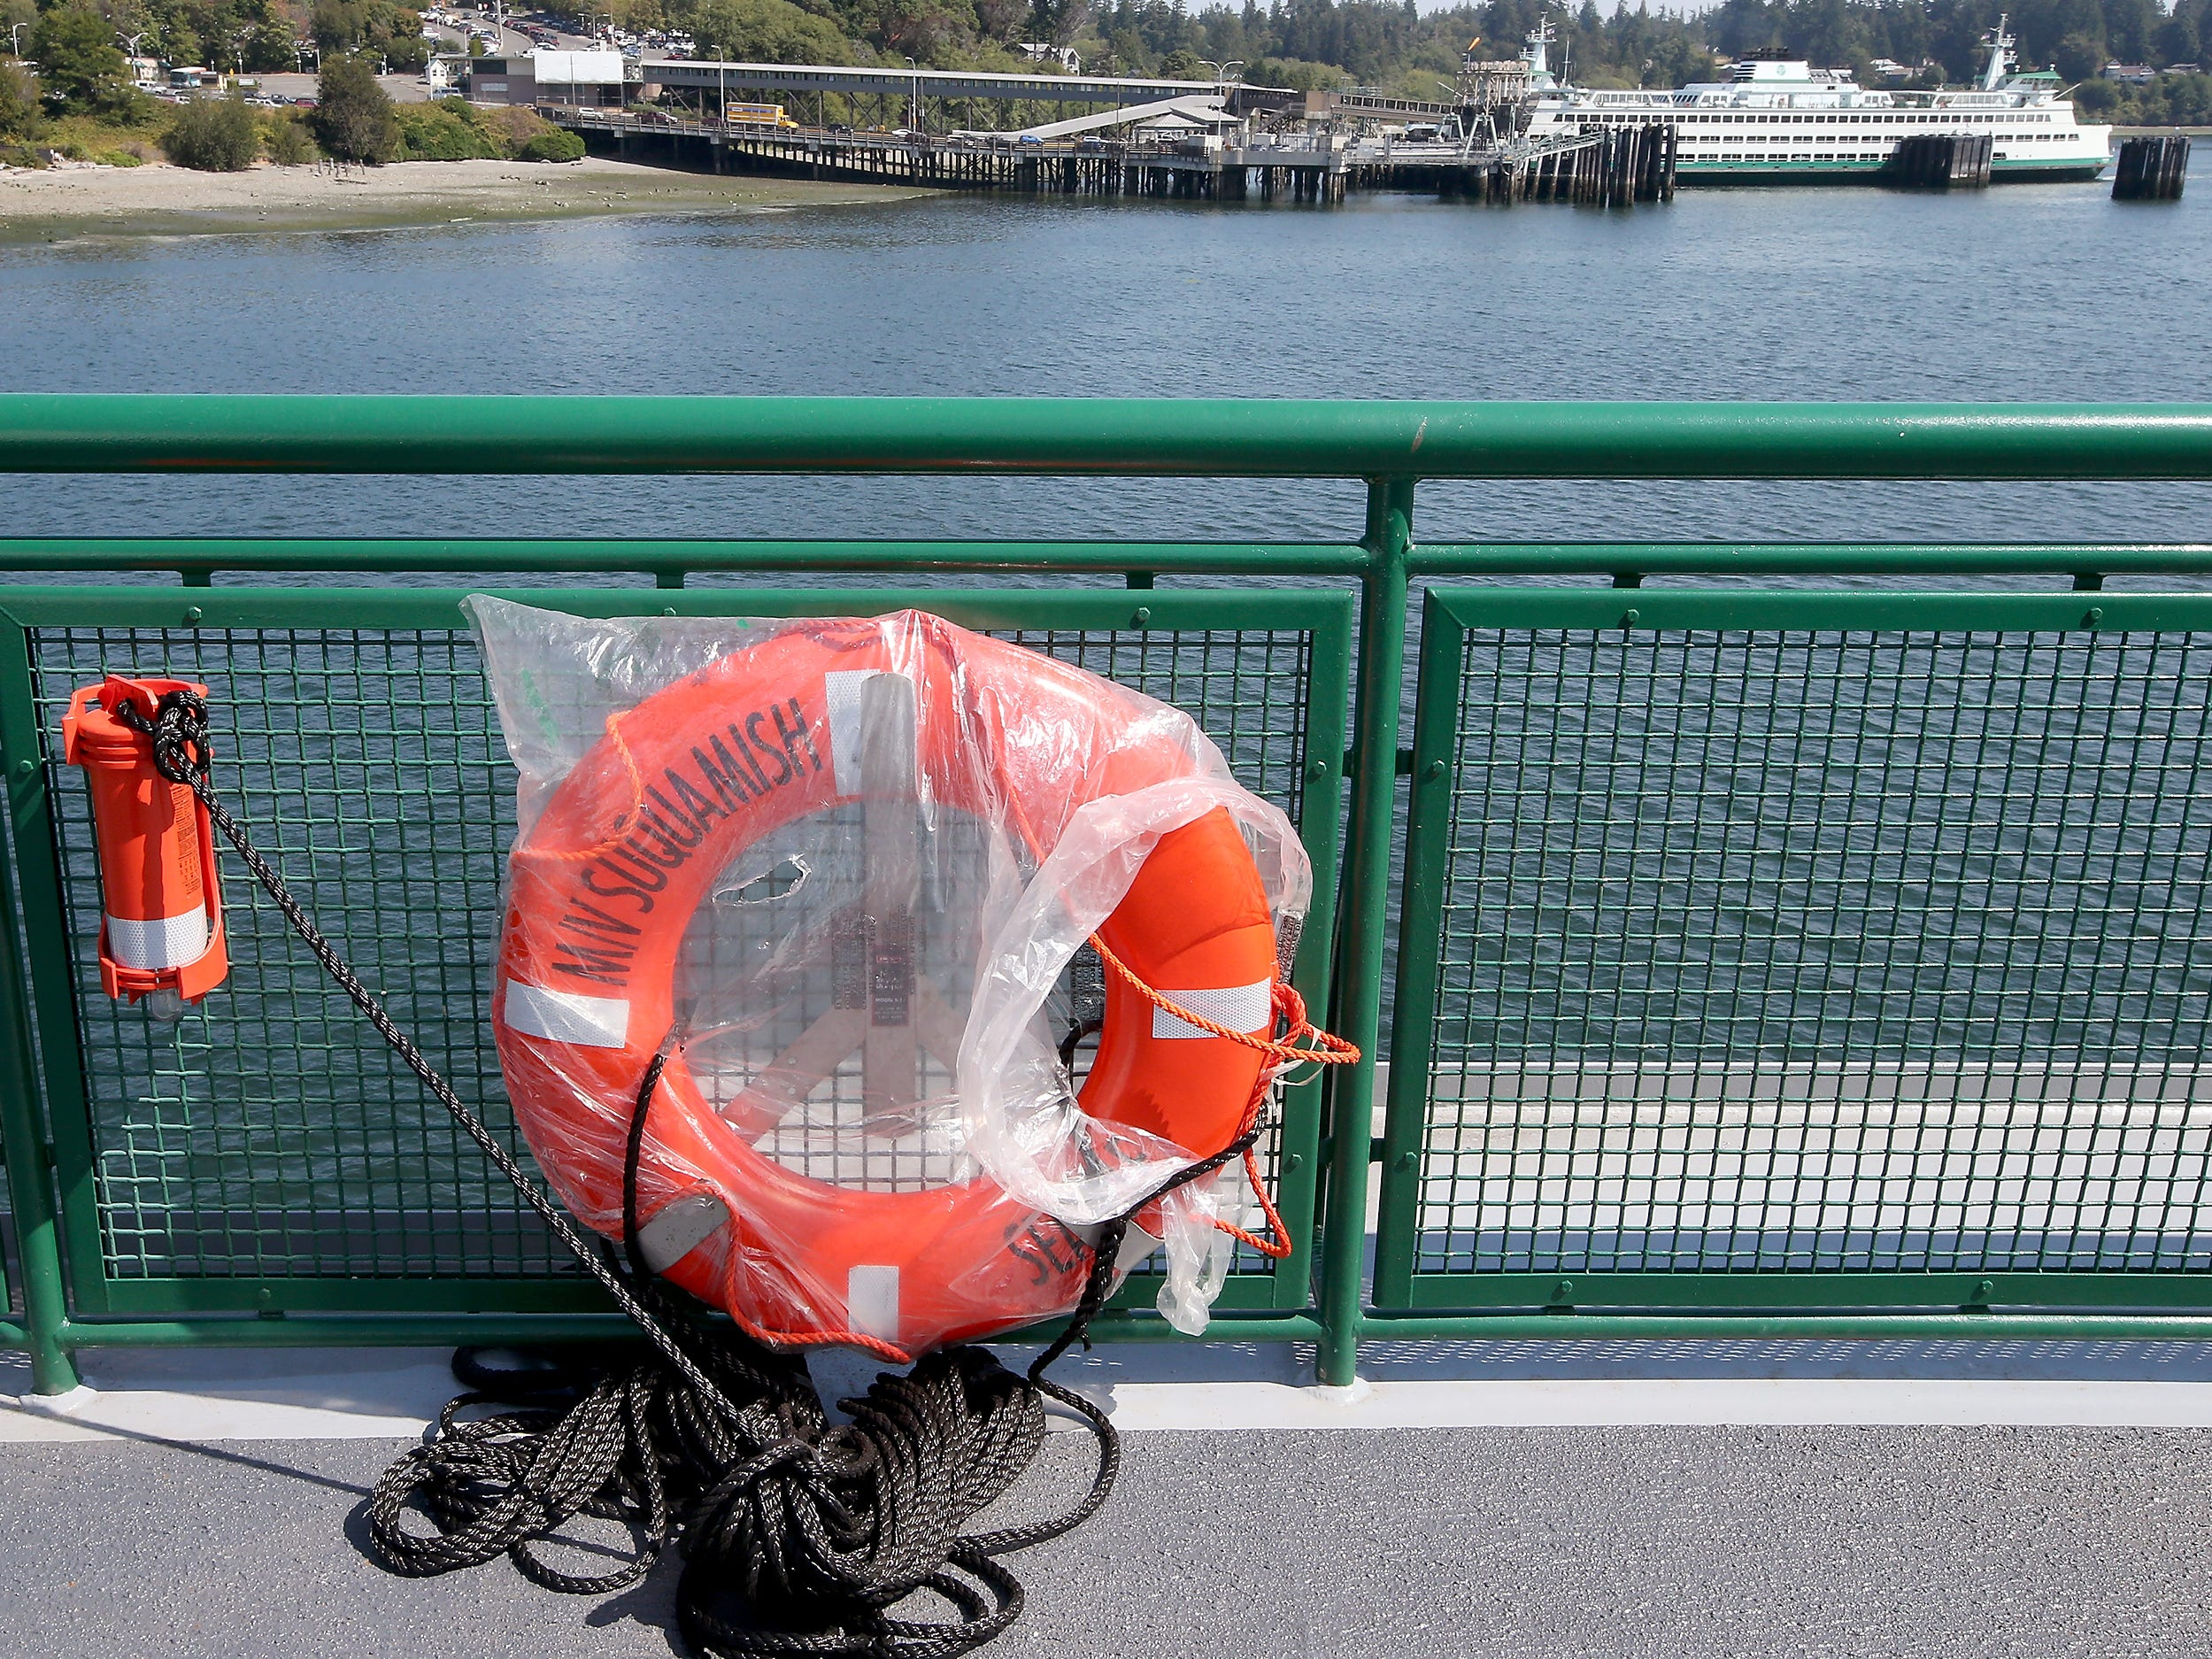 A life ring still inside plastic wrap awaits unwrapping aboard the top passenger deck of the Washington State Ferry Suquamish at the Eagle Harbor Maintenance Facility on Thursday, August 9, 2018.